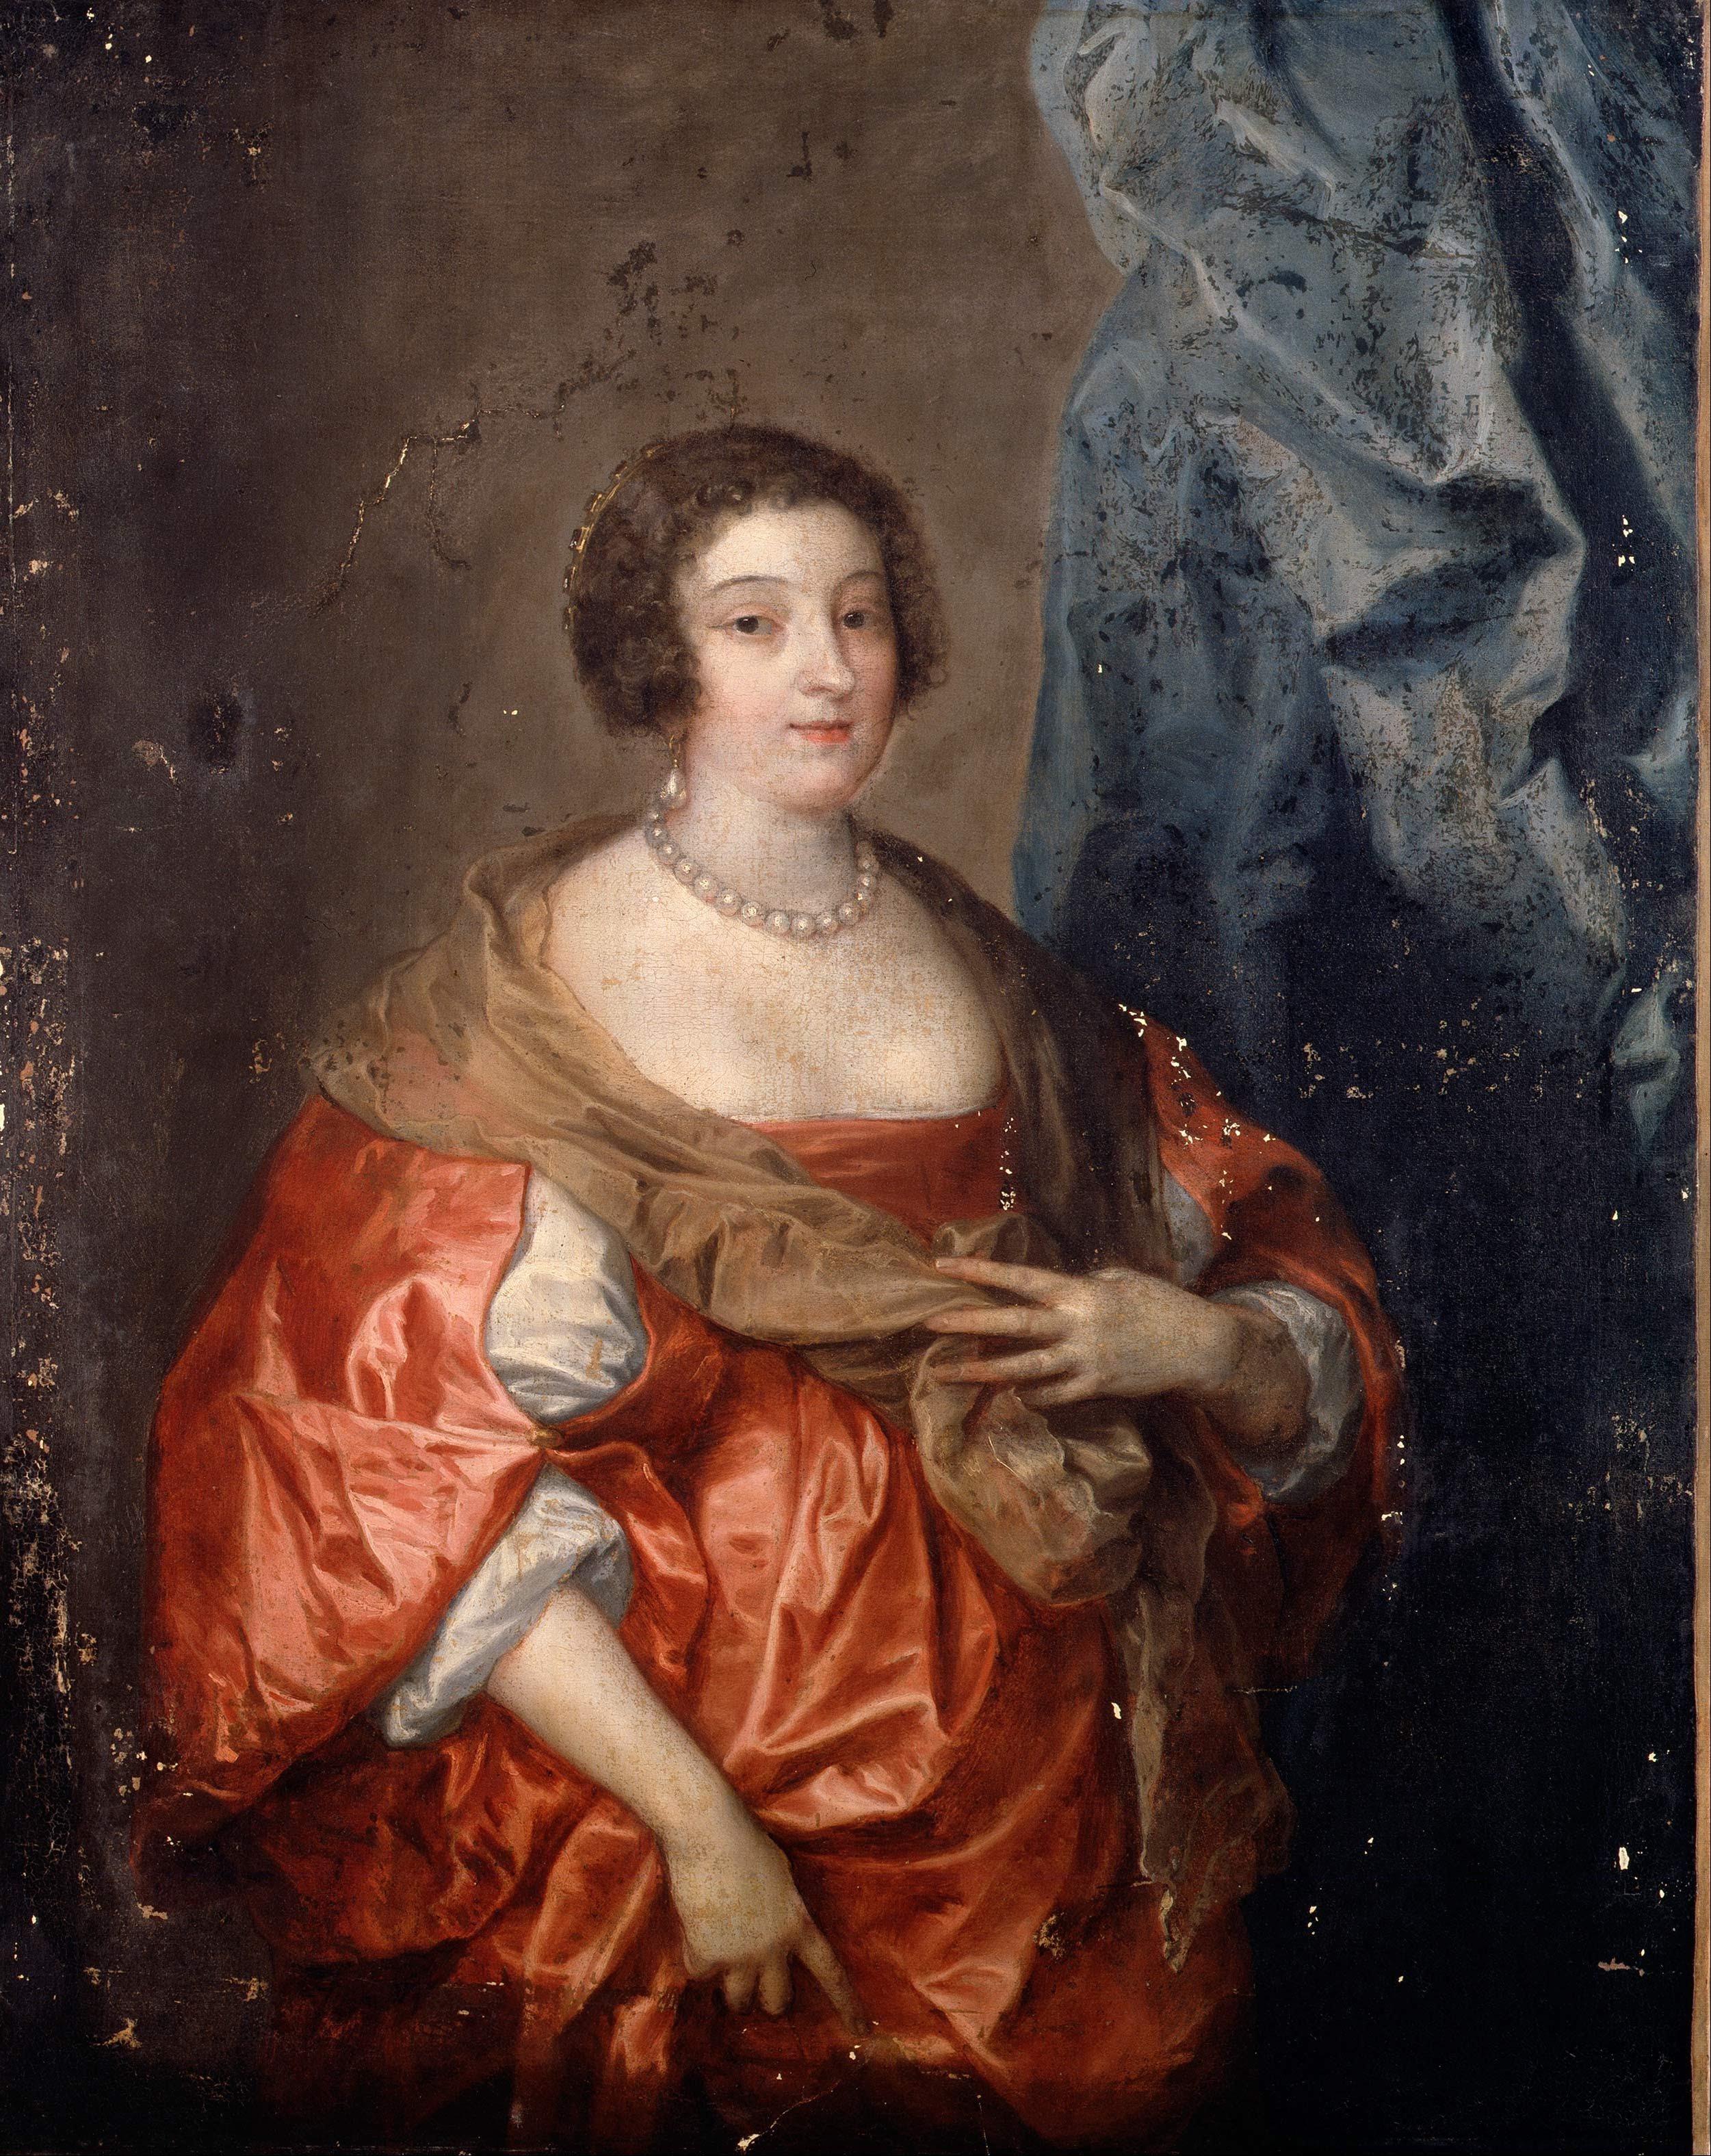 Van Dyck C Sir Anthony Portrait Of A Lady Google Art Project